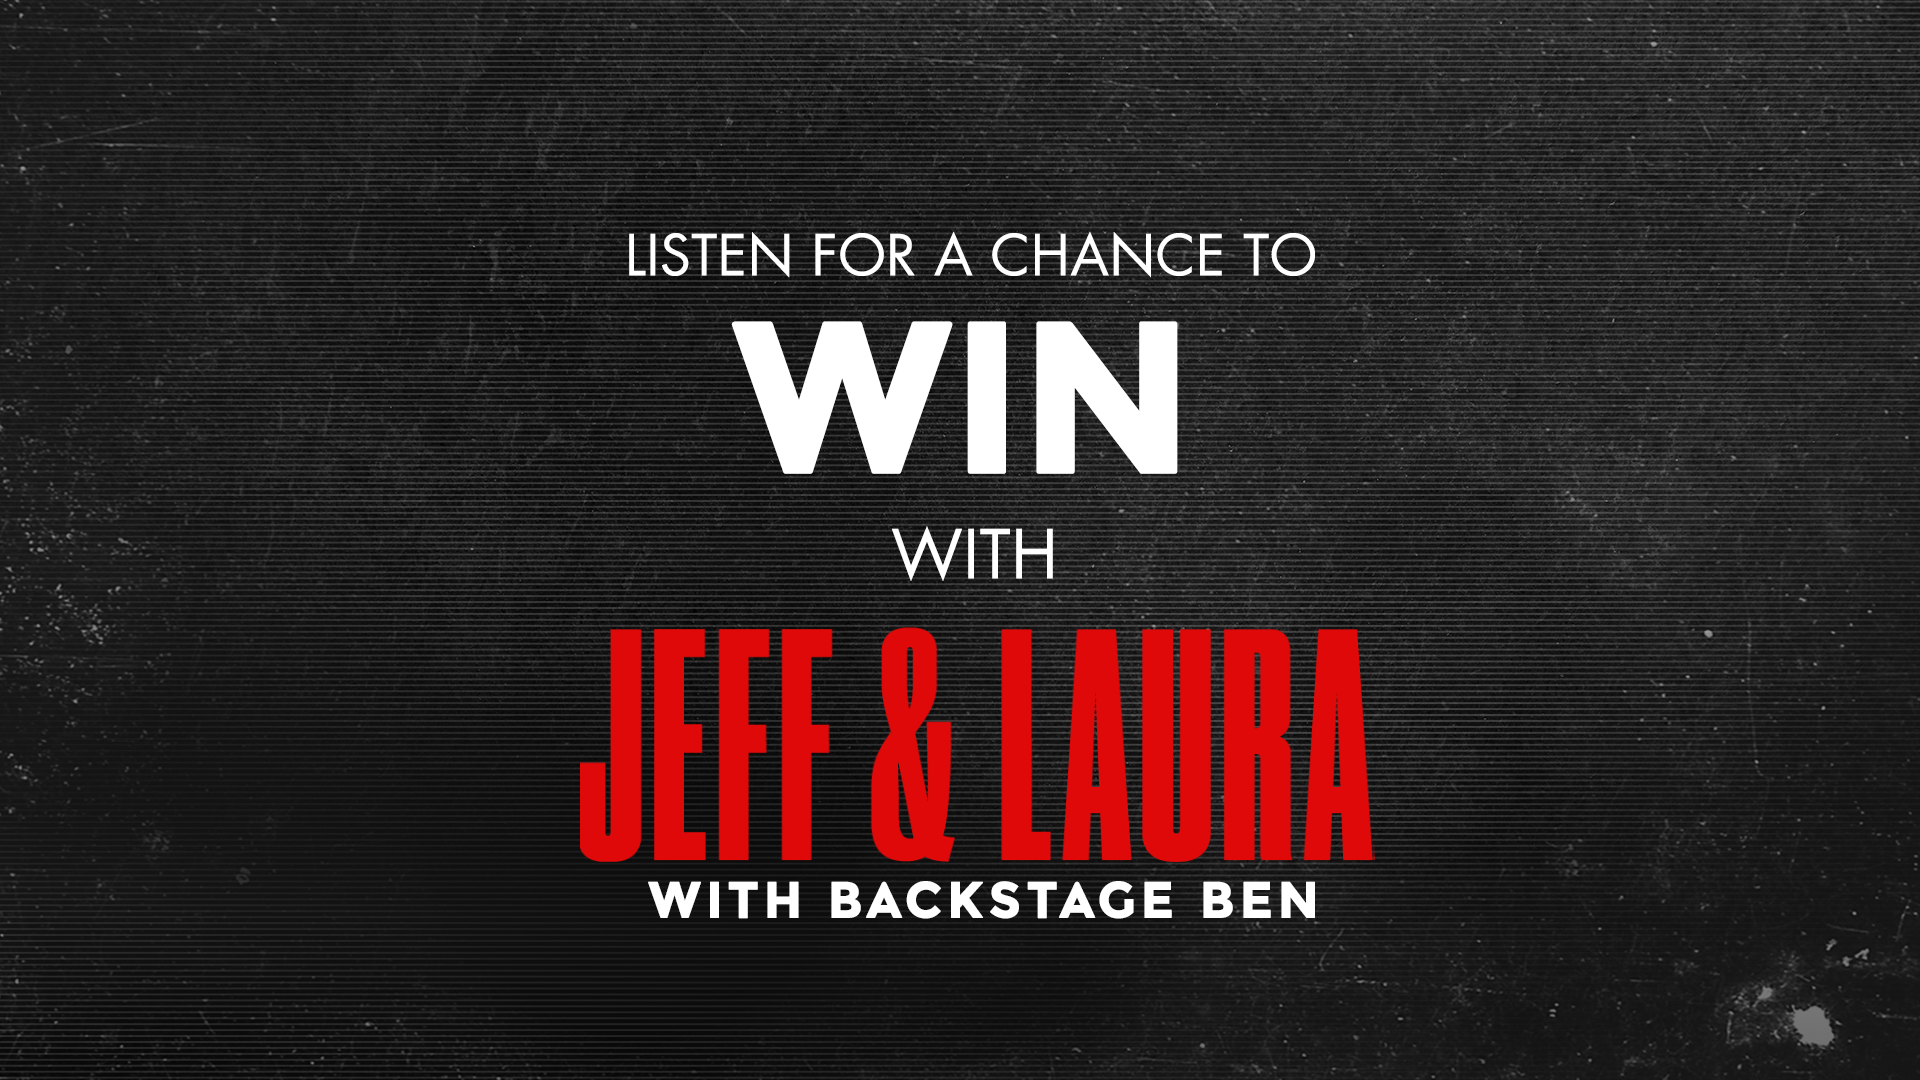 Virgin - Win with Jeff & Laura - Web